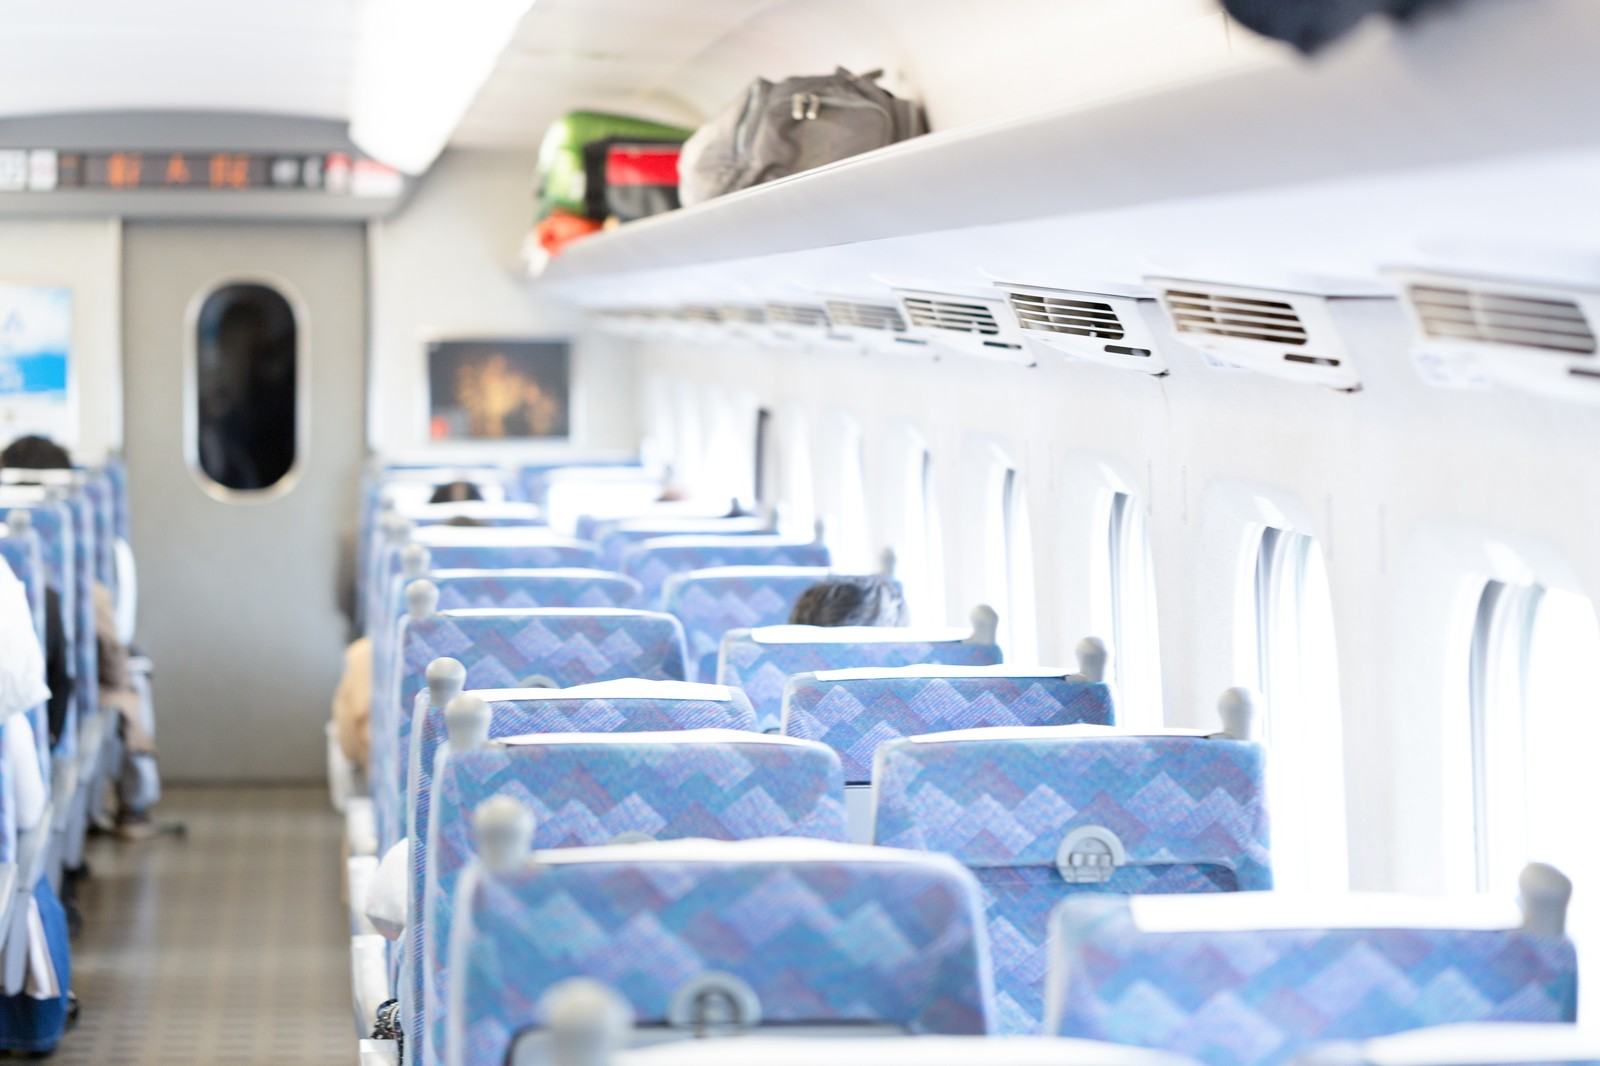 How to make seat reservation on Bullet trains and Limited Express with JR pass